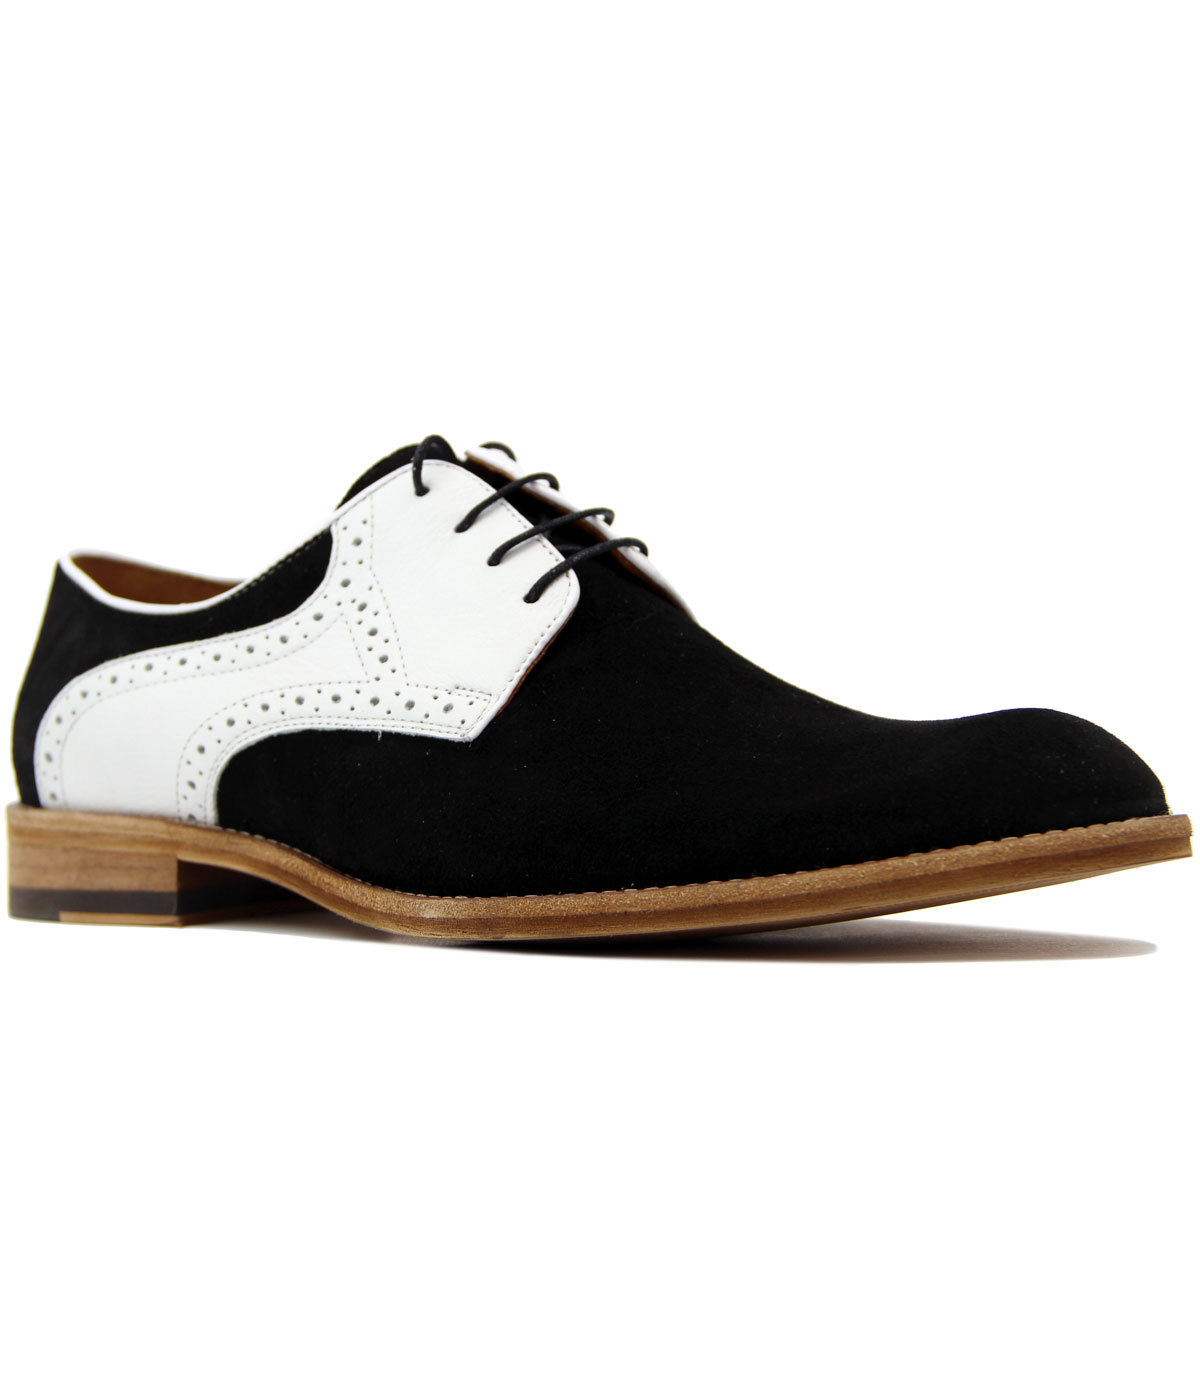 Start LACUZZO Mod Suede and Leather 2-Tone Brogues